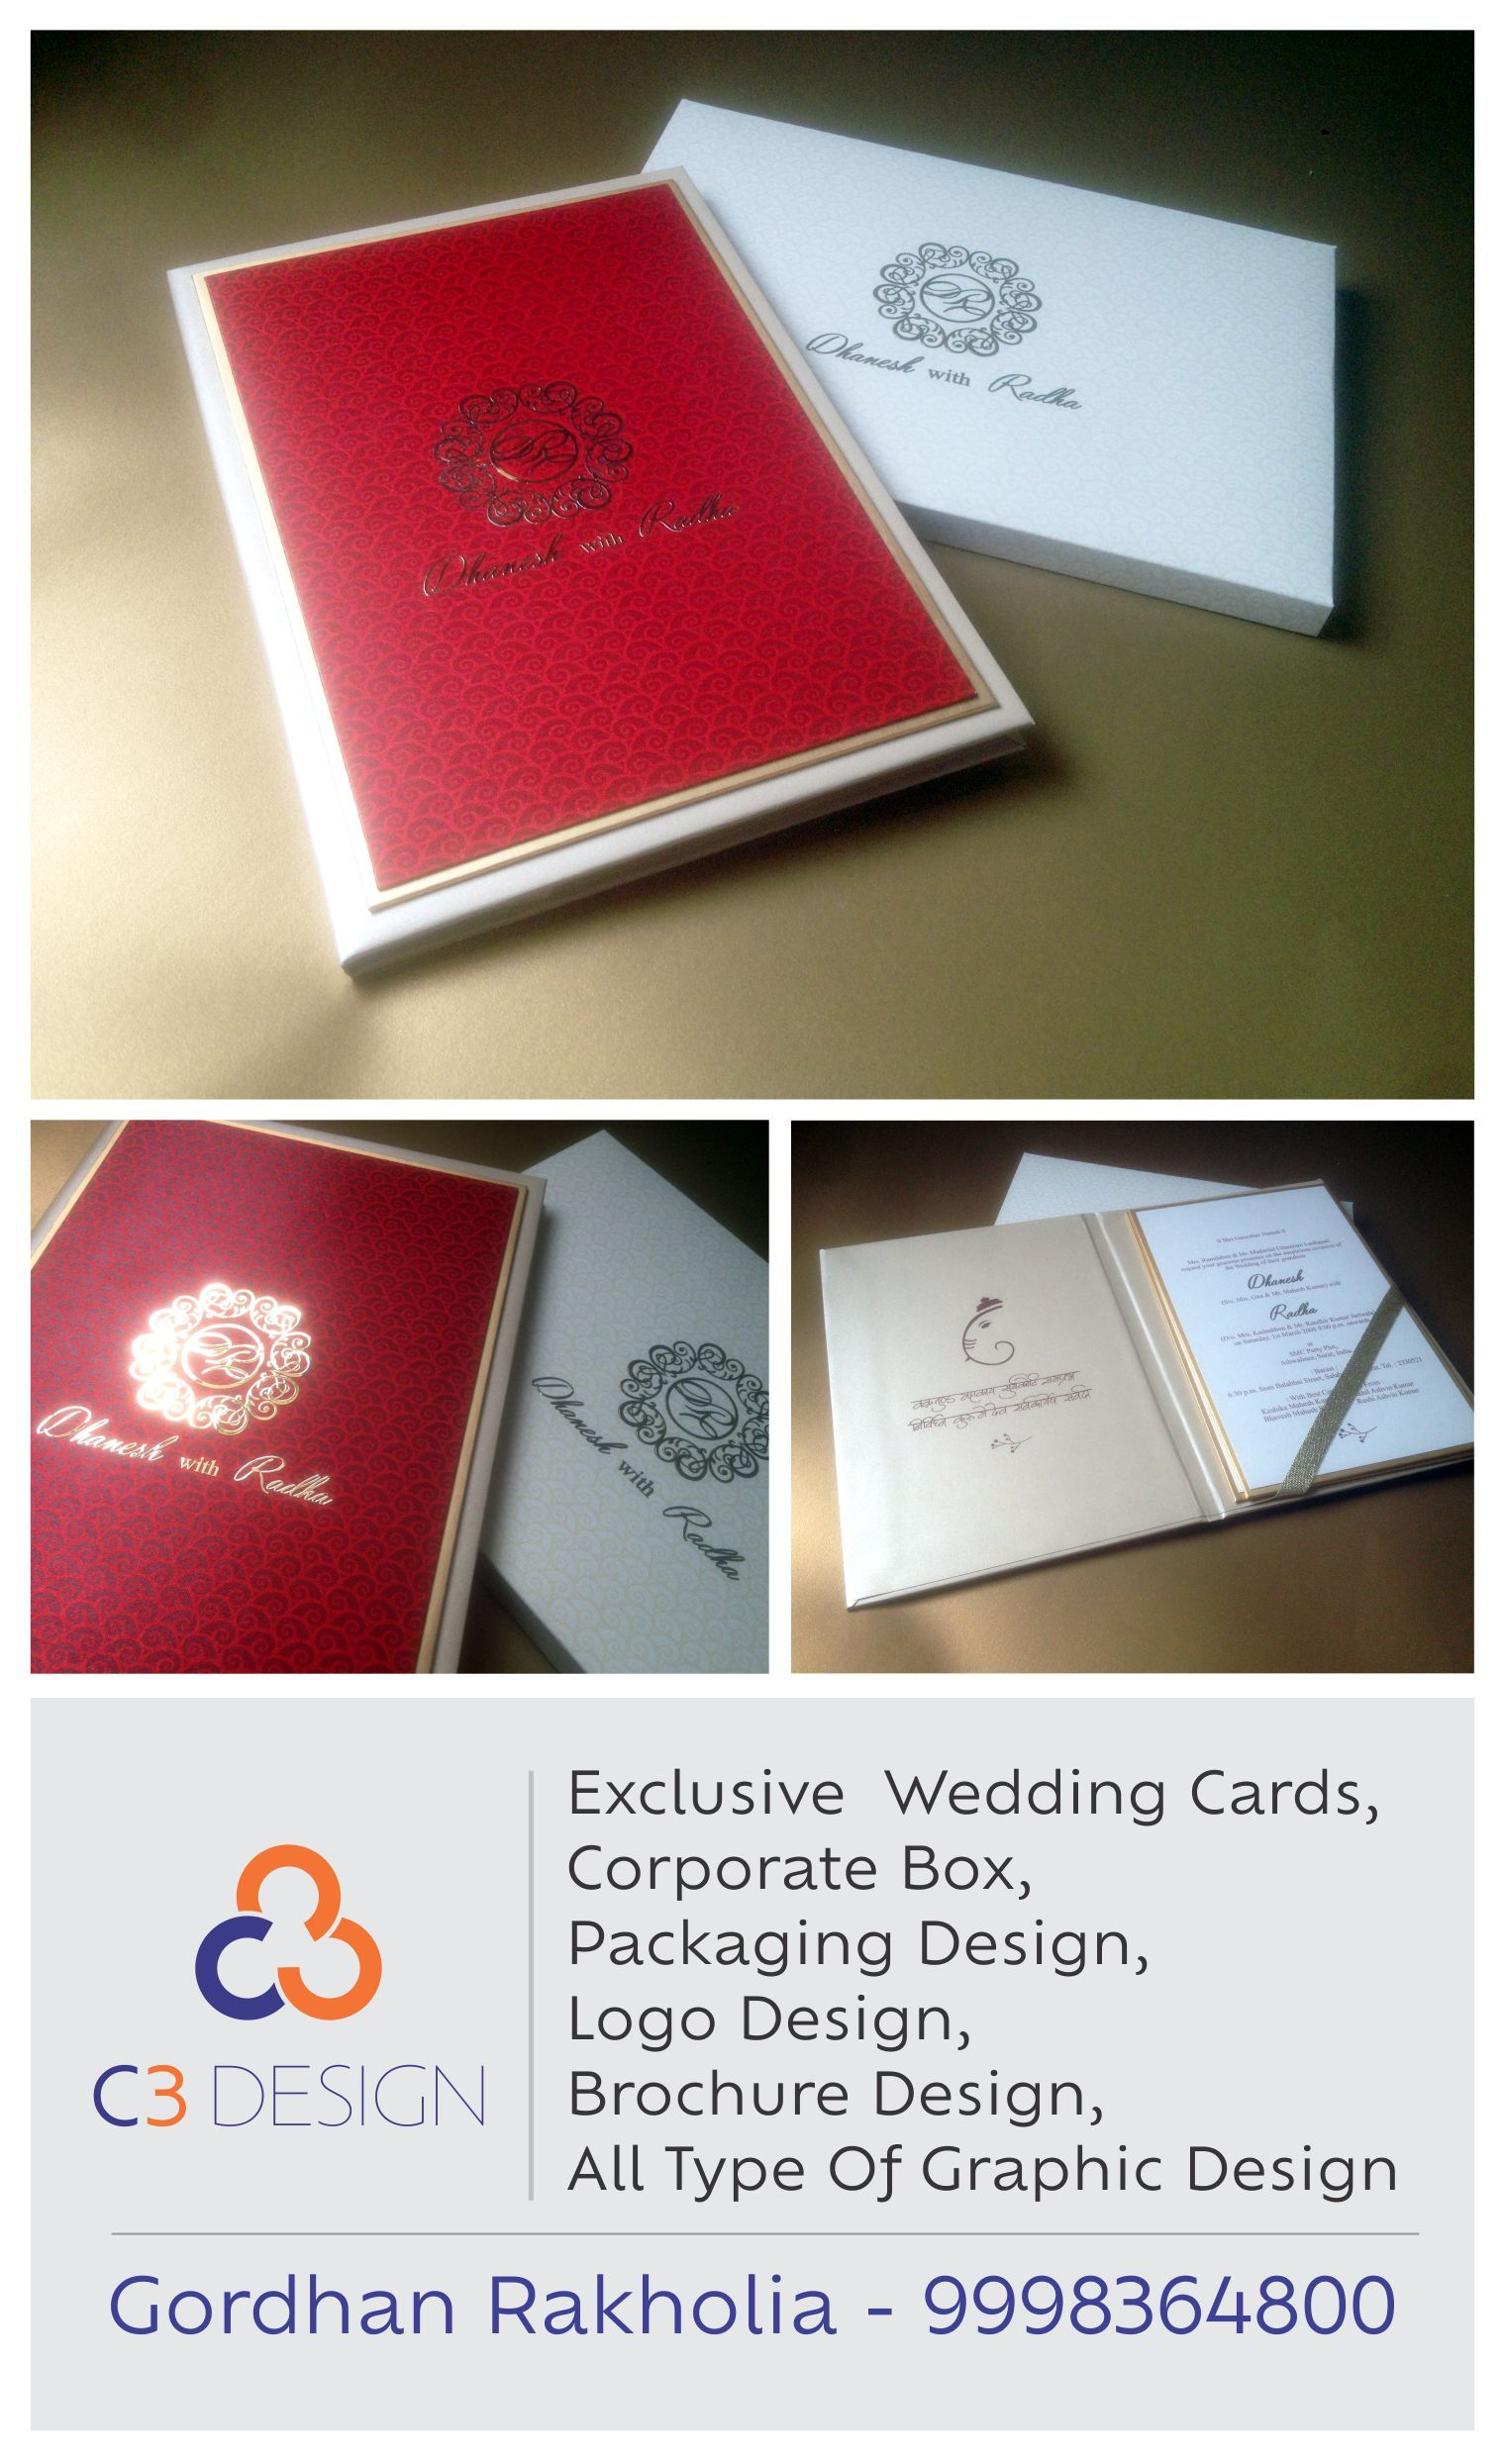 Pin by Logo Design on Wedding Cards | Pinterest | Wedding card and ...